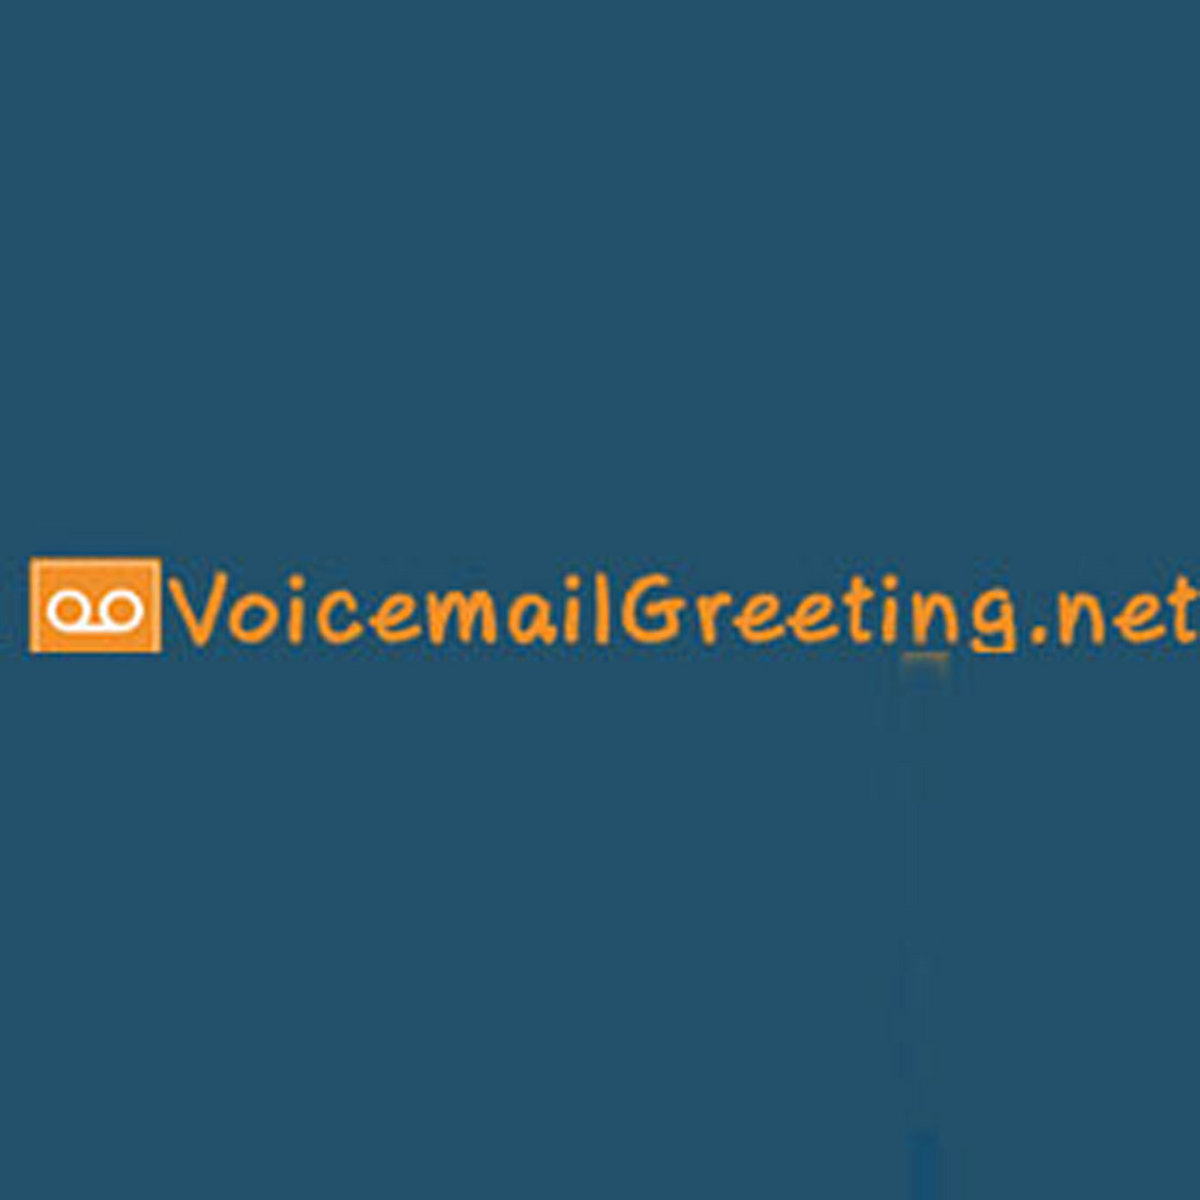 Medical office voicemail greeting template voicemail greeting voicemail greeting image kristyandbryce Image collections